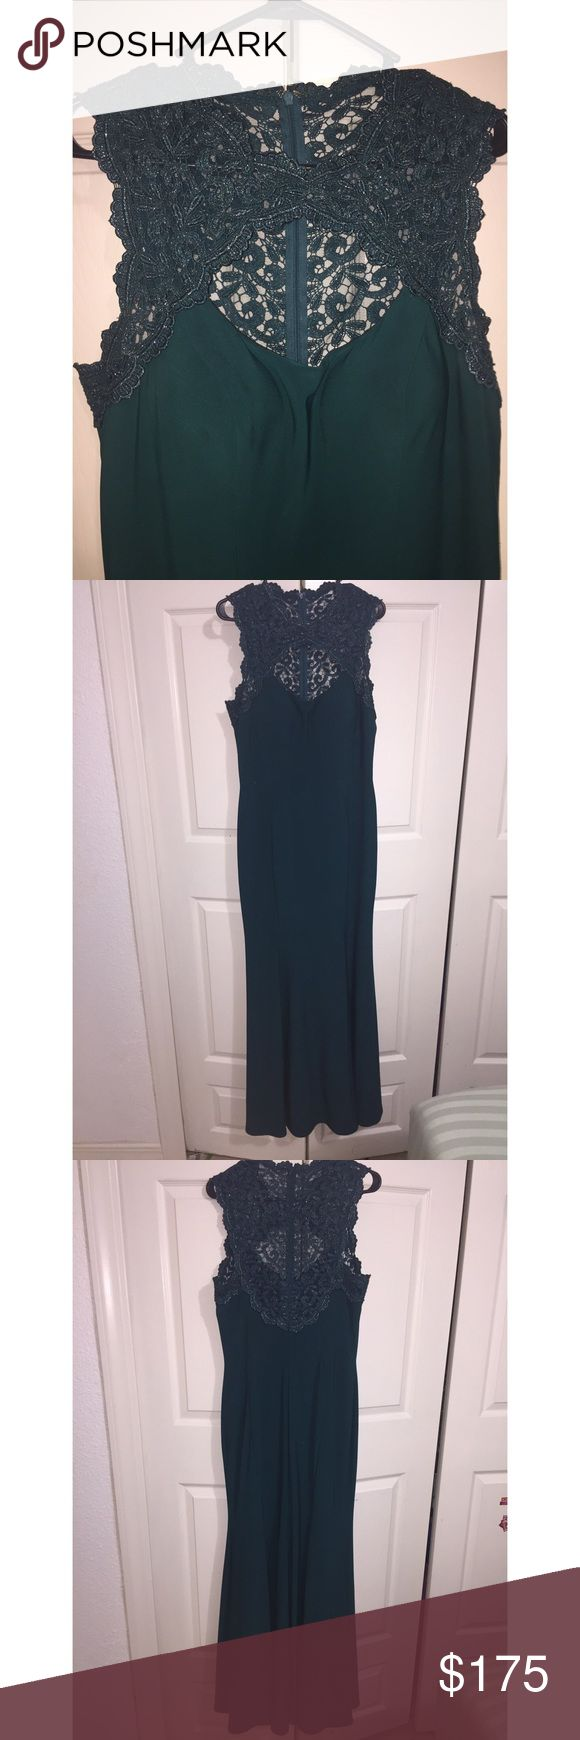 Formal & Elegant Fitted Emerald Gown This gown/dress is perfect for any special occasion. It's floor length, fitted to your curves, and has an opening in the front. This has only been worn once, and has a tiny, black stain towards the bottom of the dress (shown in photos). Xscape Dresses Wedding